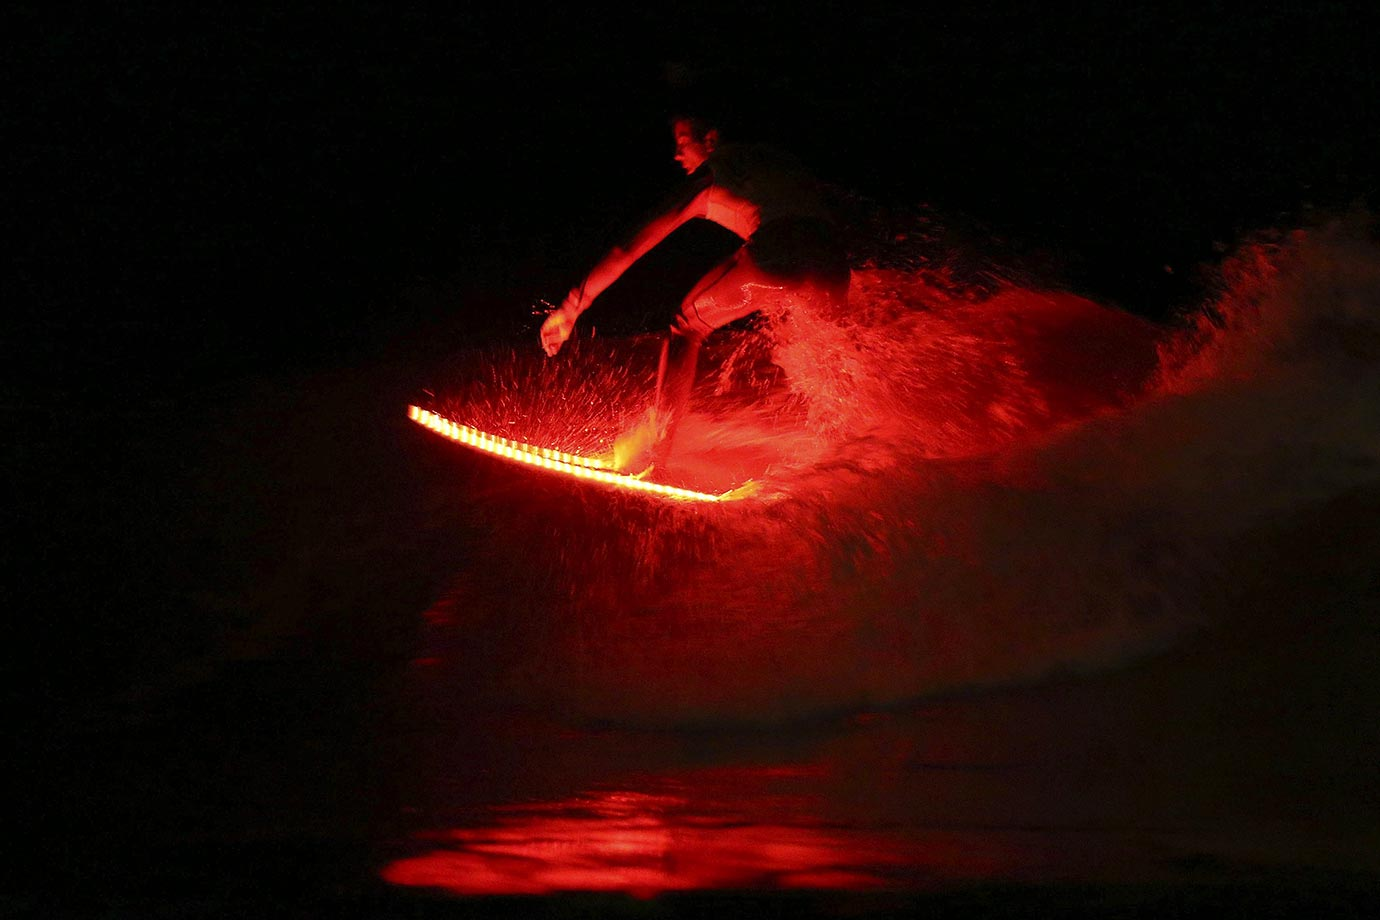 A surfer rides a wave on an illuminated surf board during a night surfing event in Nigran, Pontevedra, northwestern Spain.